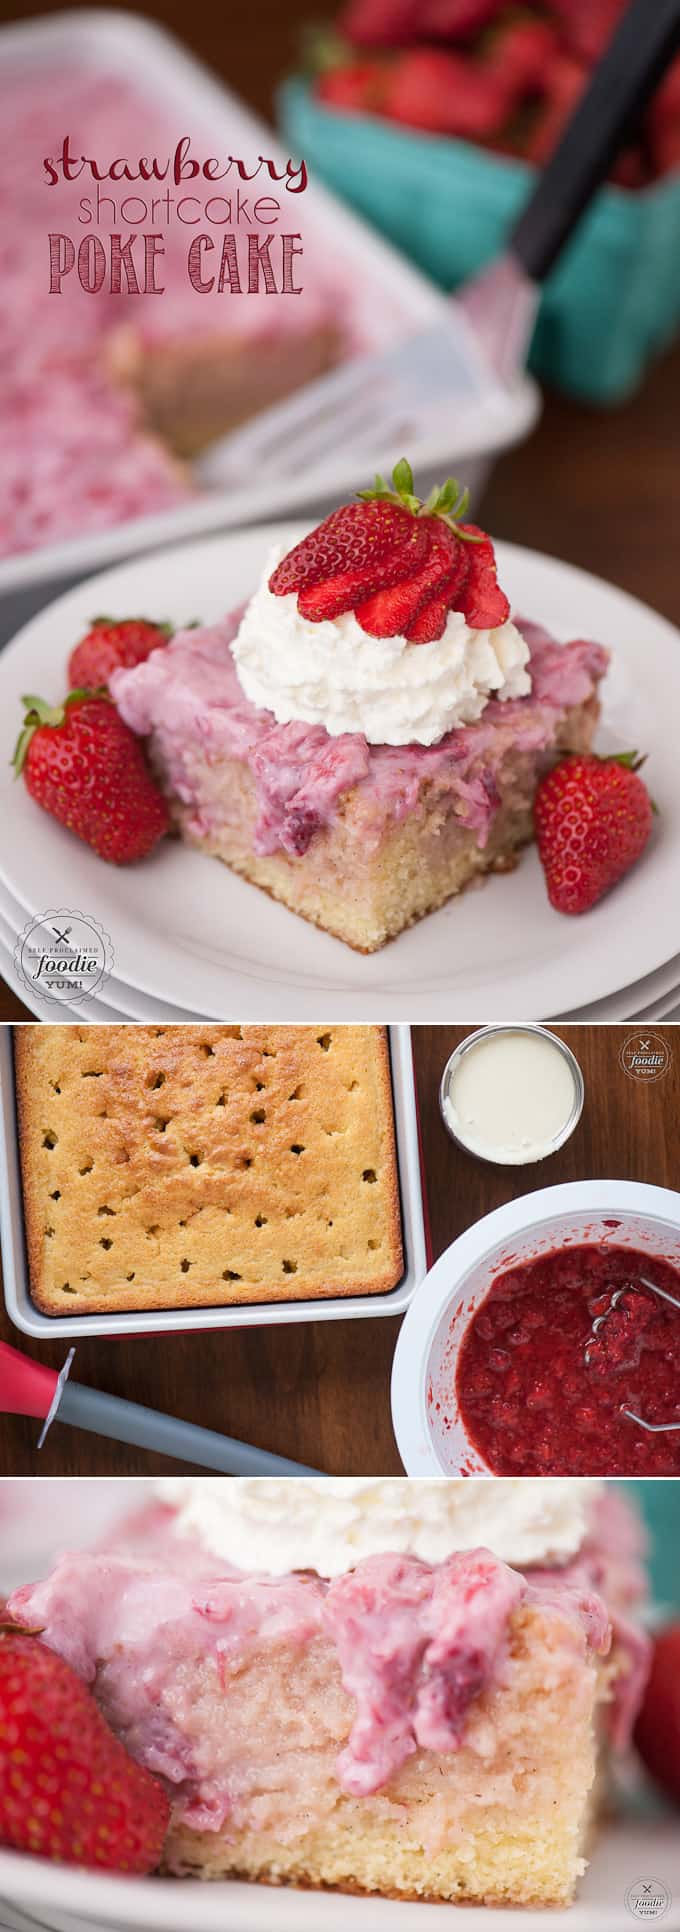 Fresh summer strawberries, sweetened condensed milk, and whipped cream transform a basic vanilla cake into a heavenly Strawberry Shortcake Poke Cake.